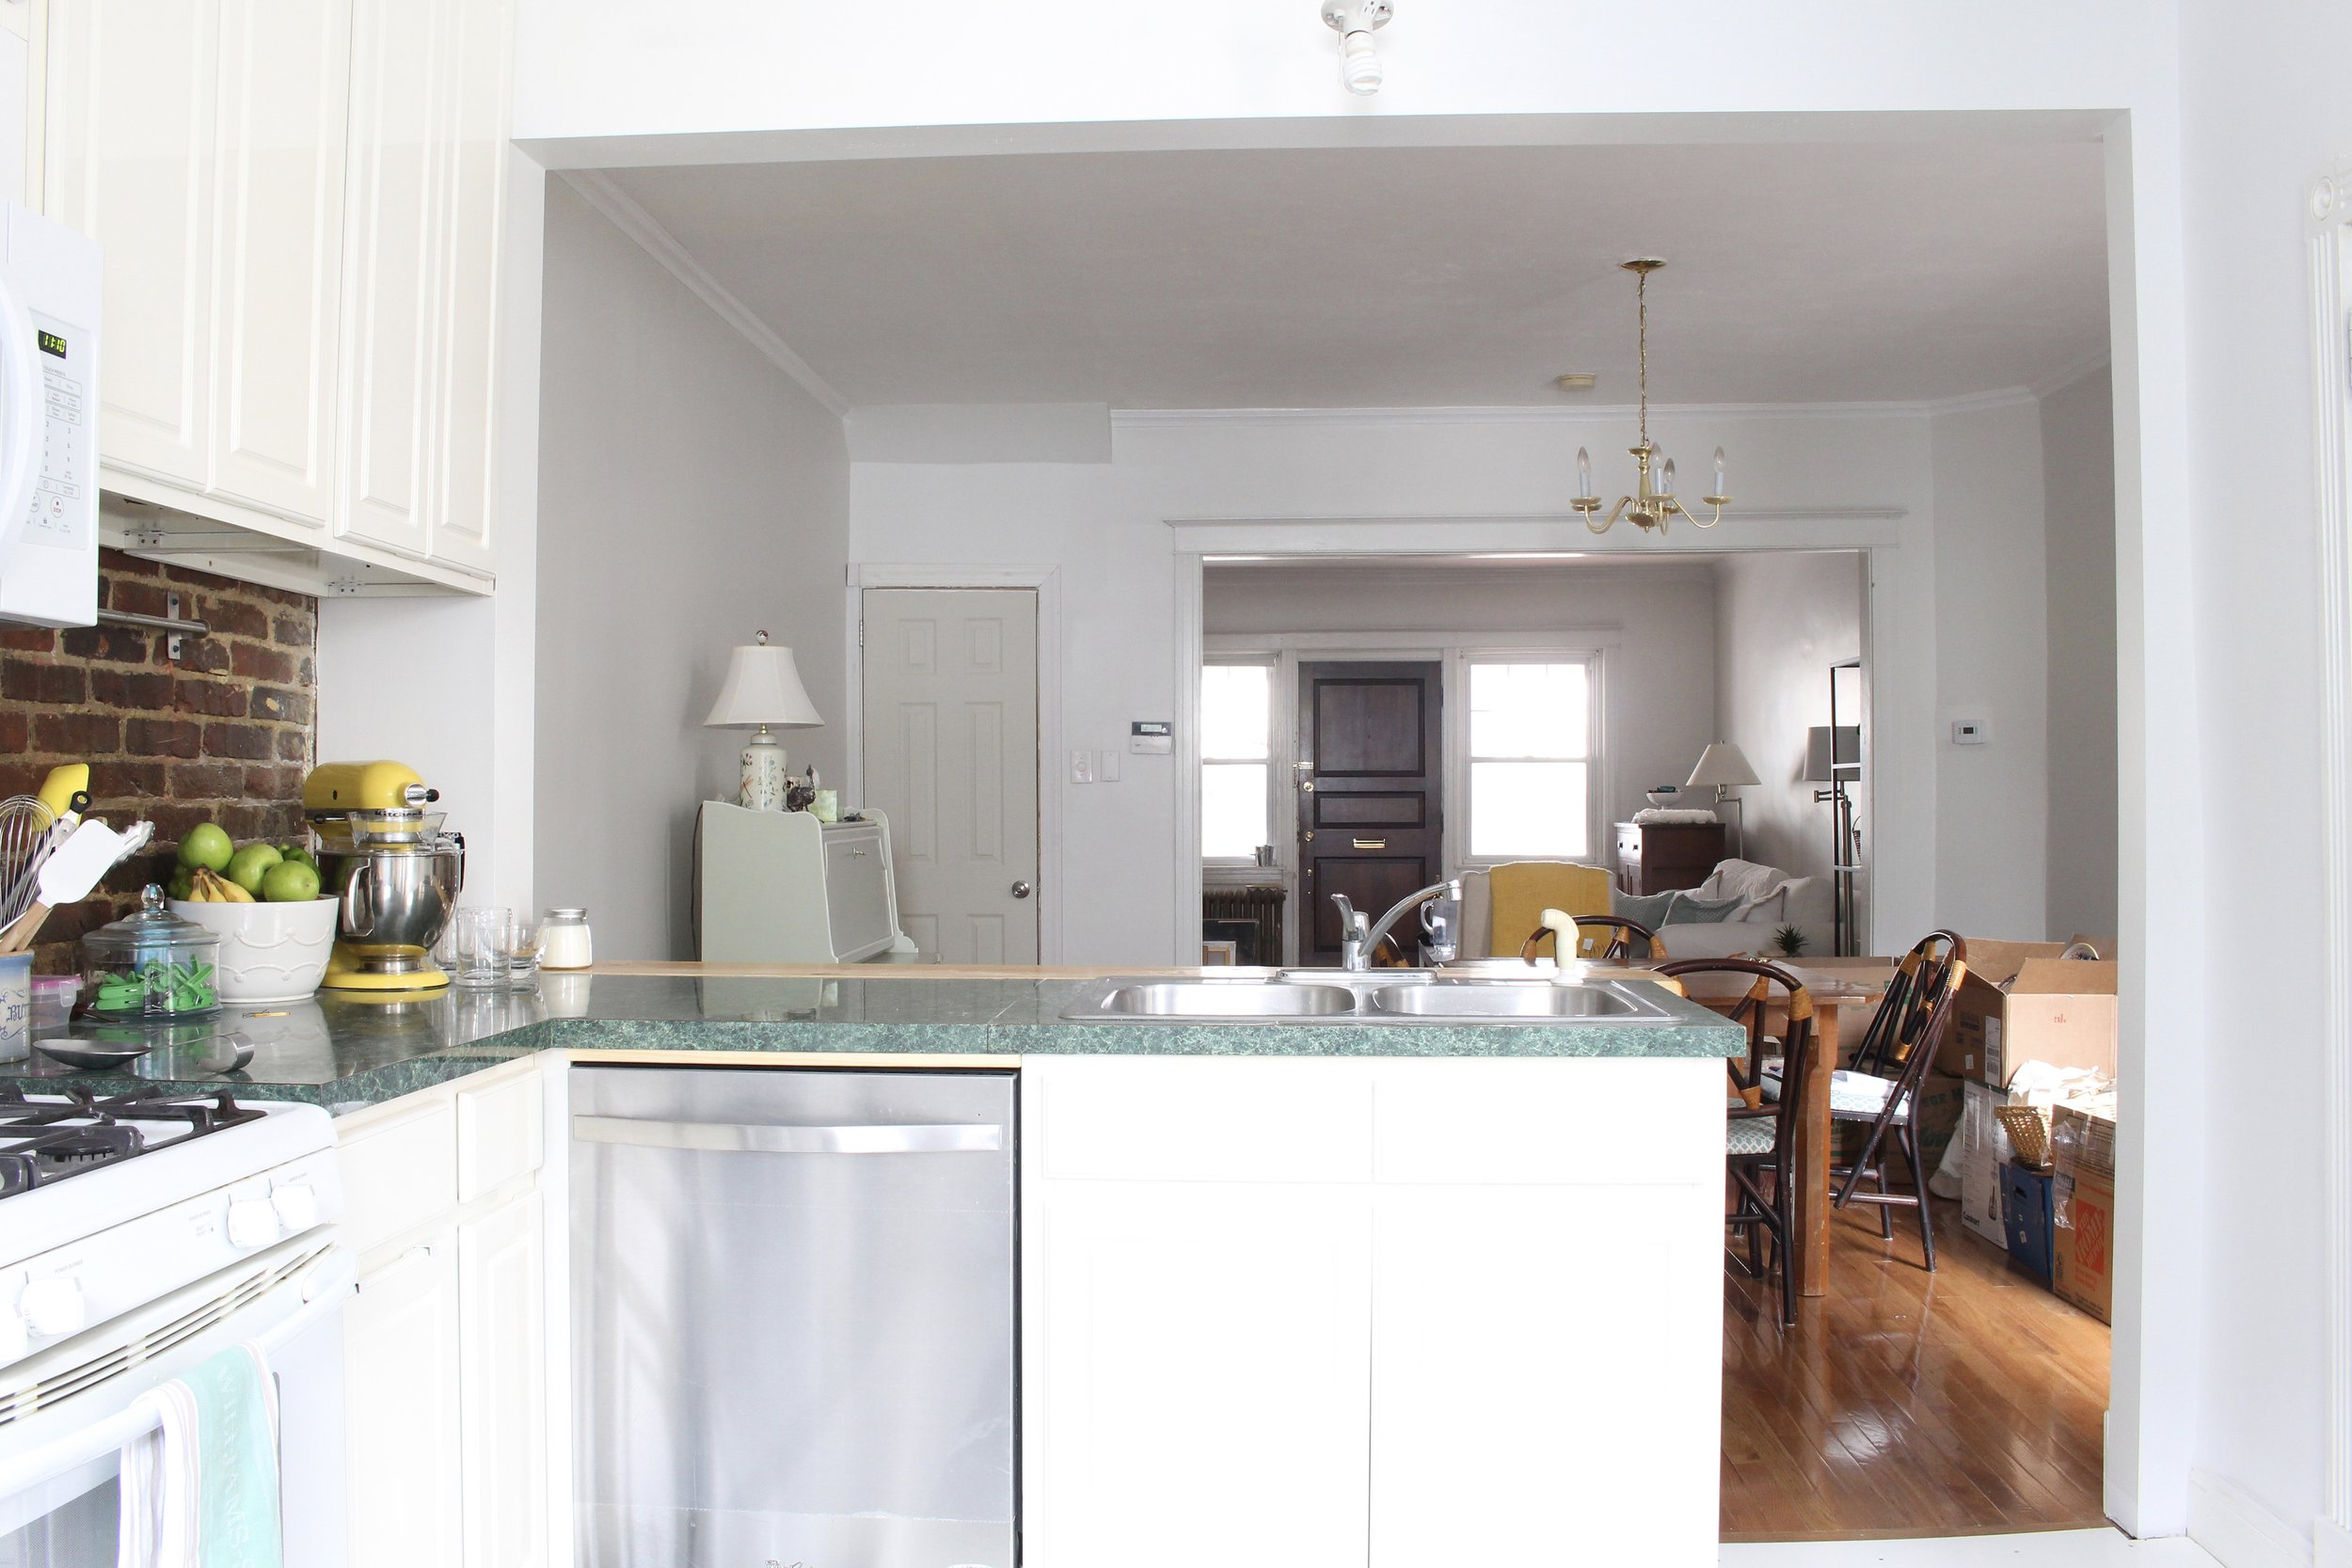 Veddinge Keuken Before After Our Kitchen Renovation Mix Match Design Company